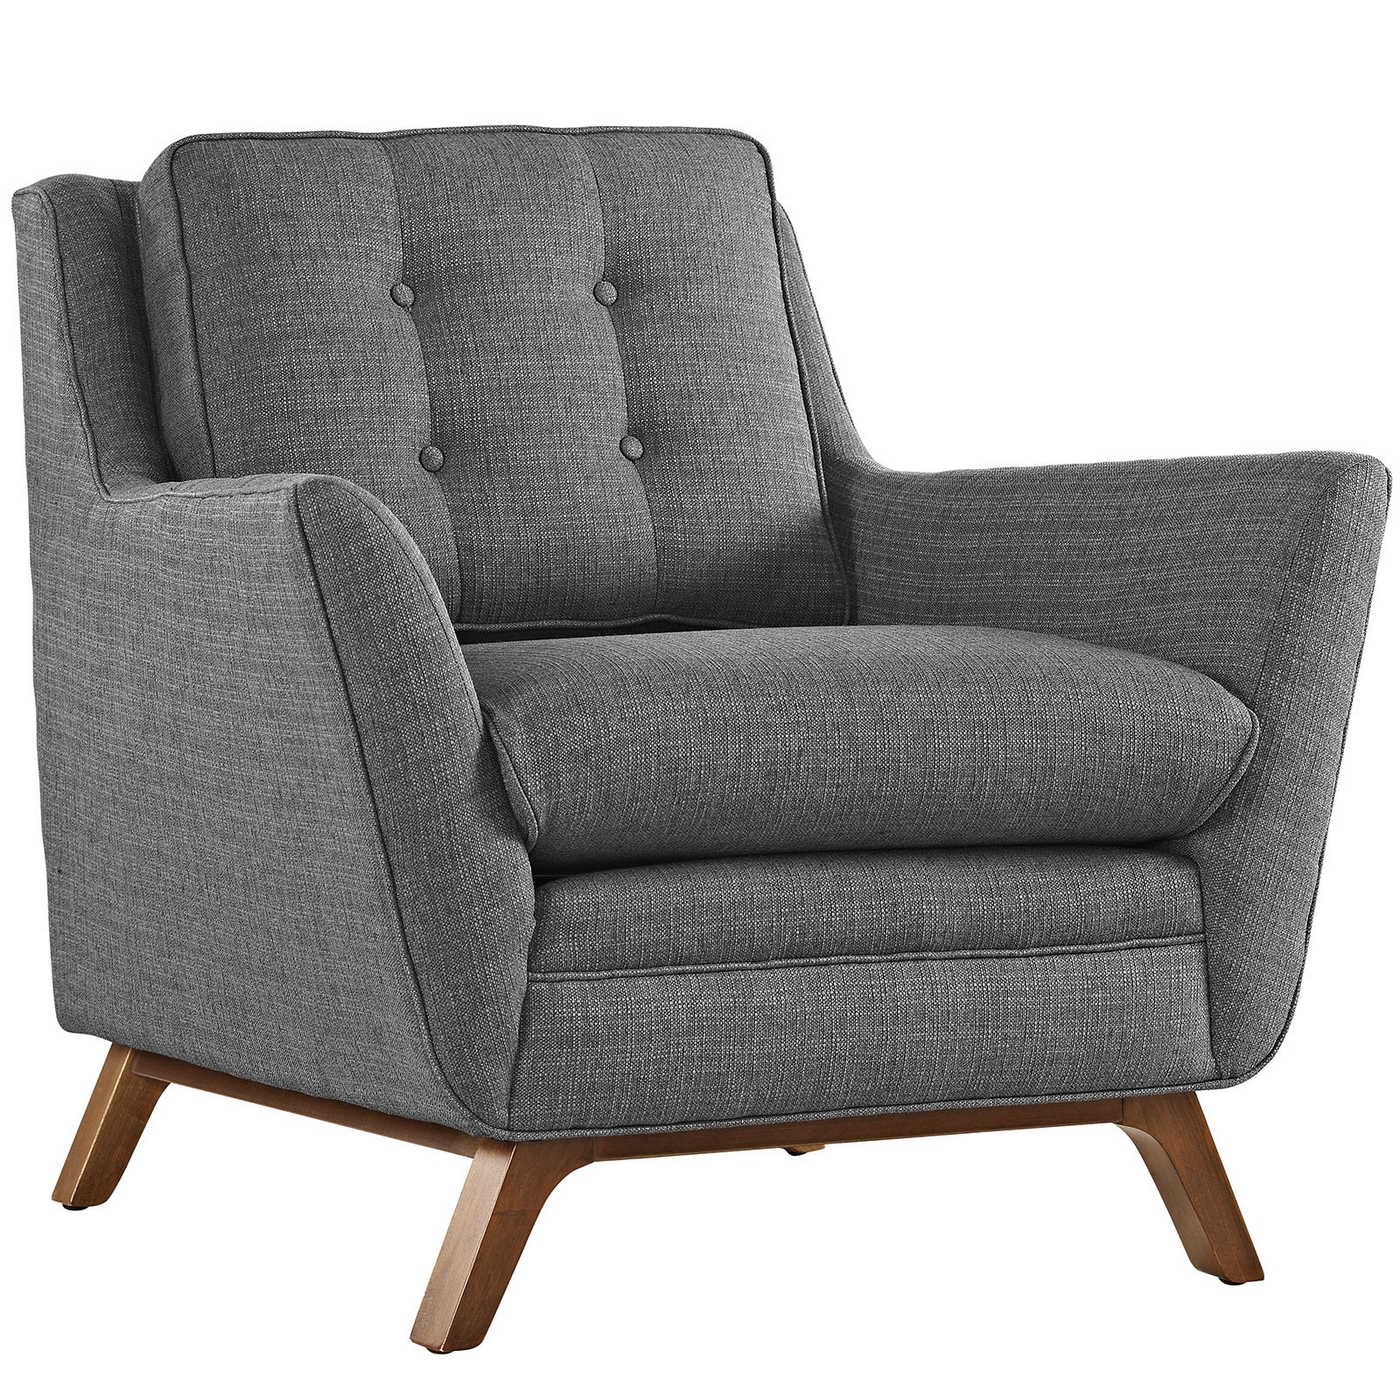 grey modern armchairs chair design model beguile contemporary button tufted upholstered armchair gray